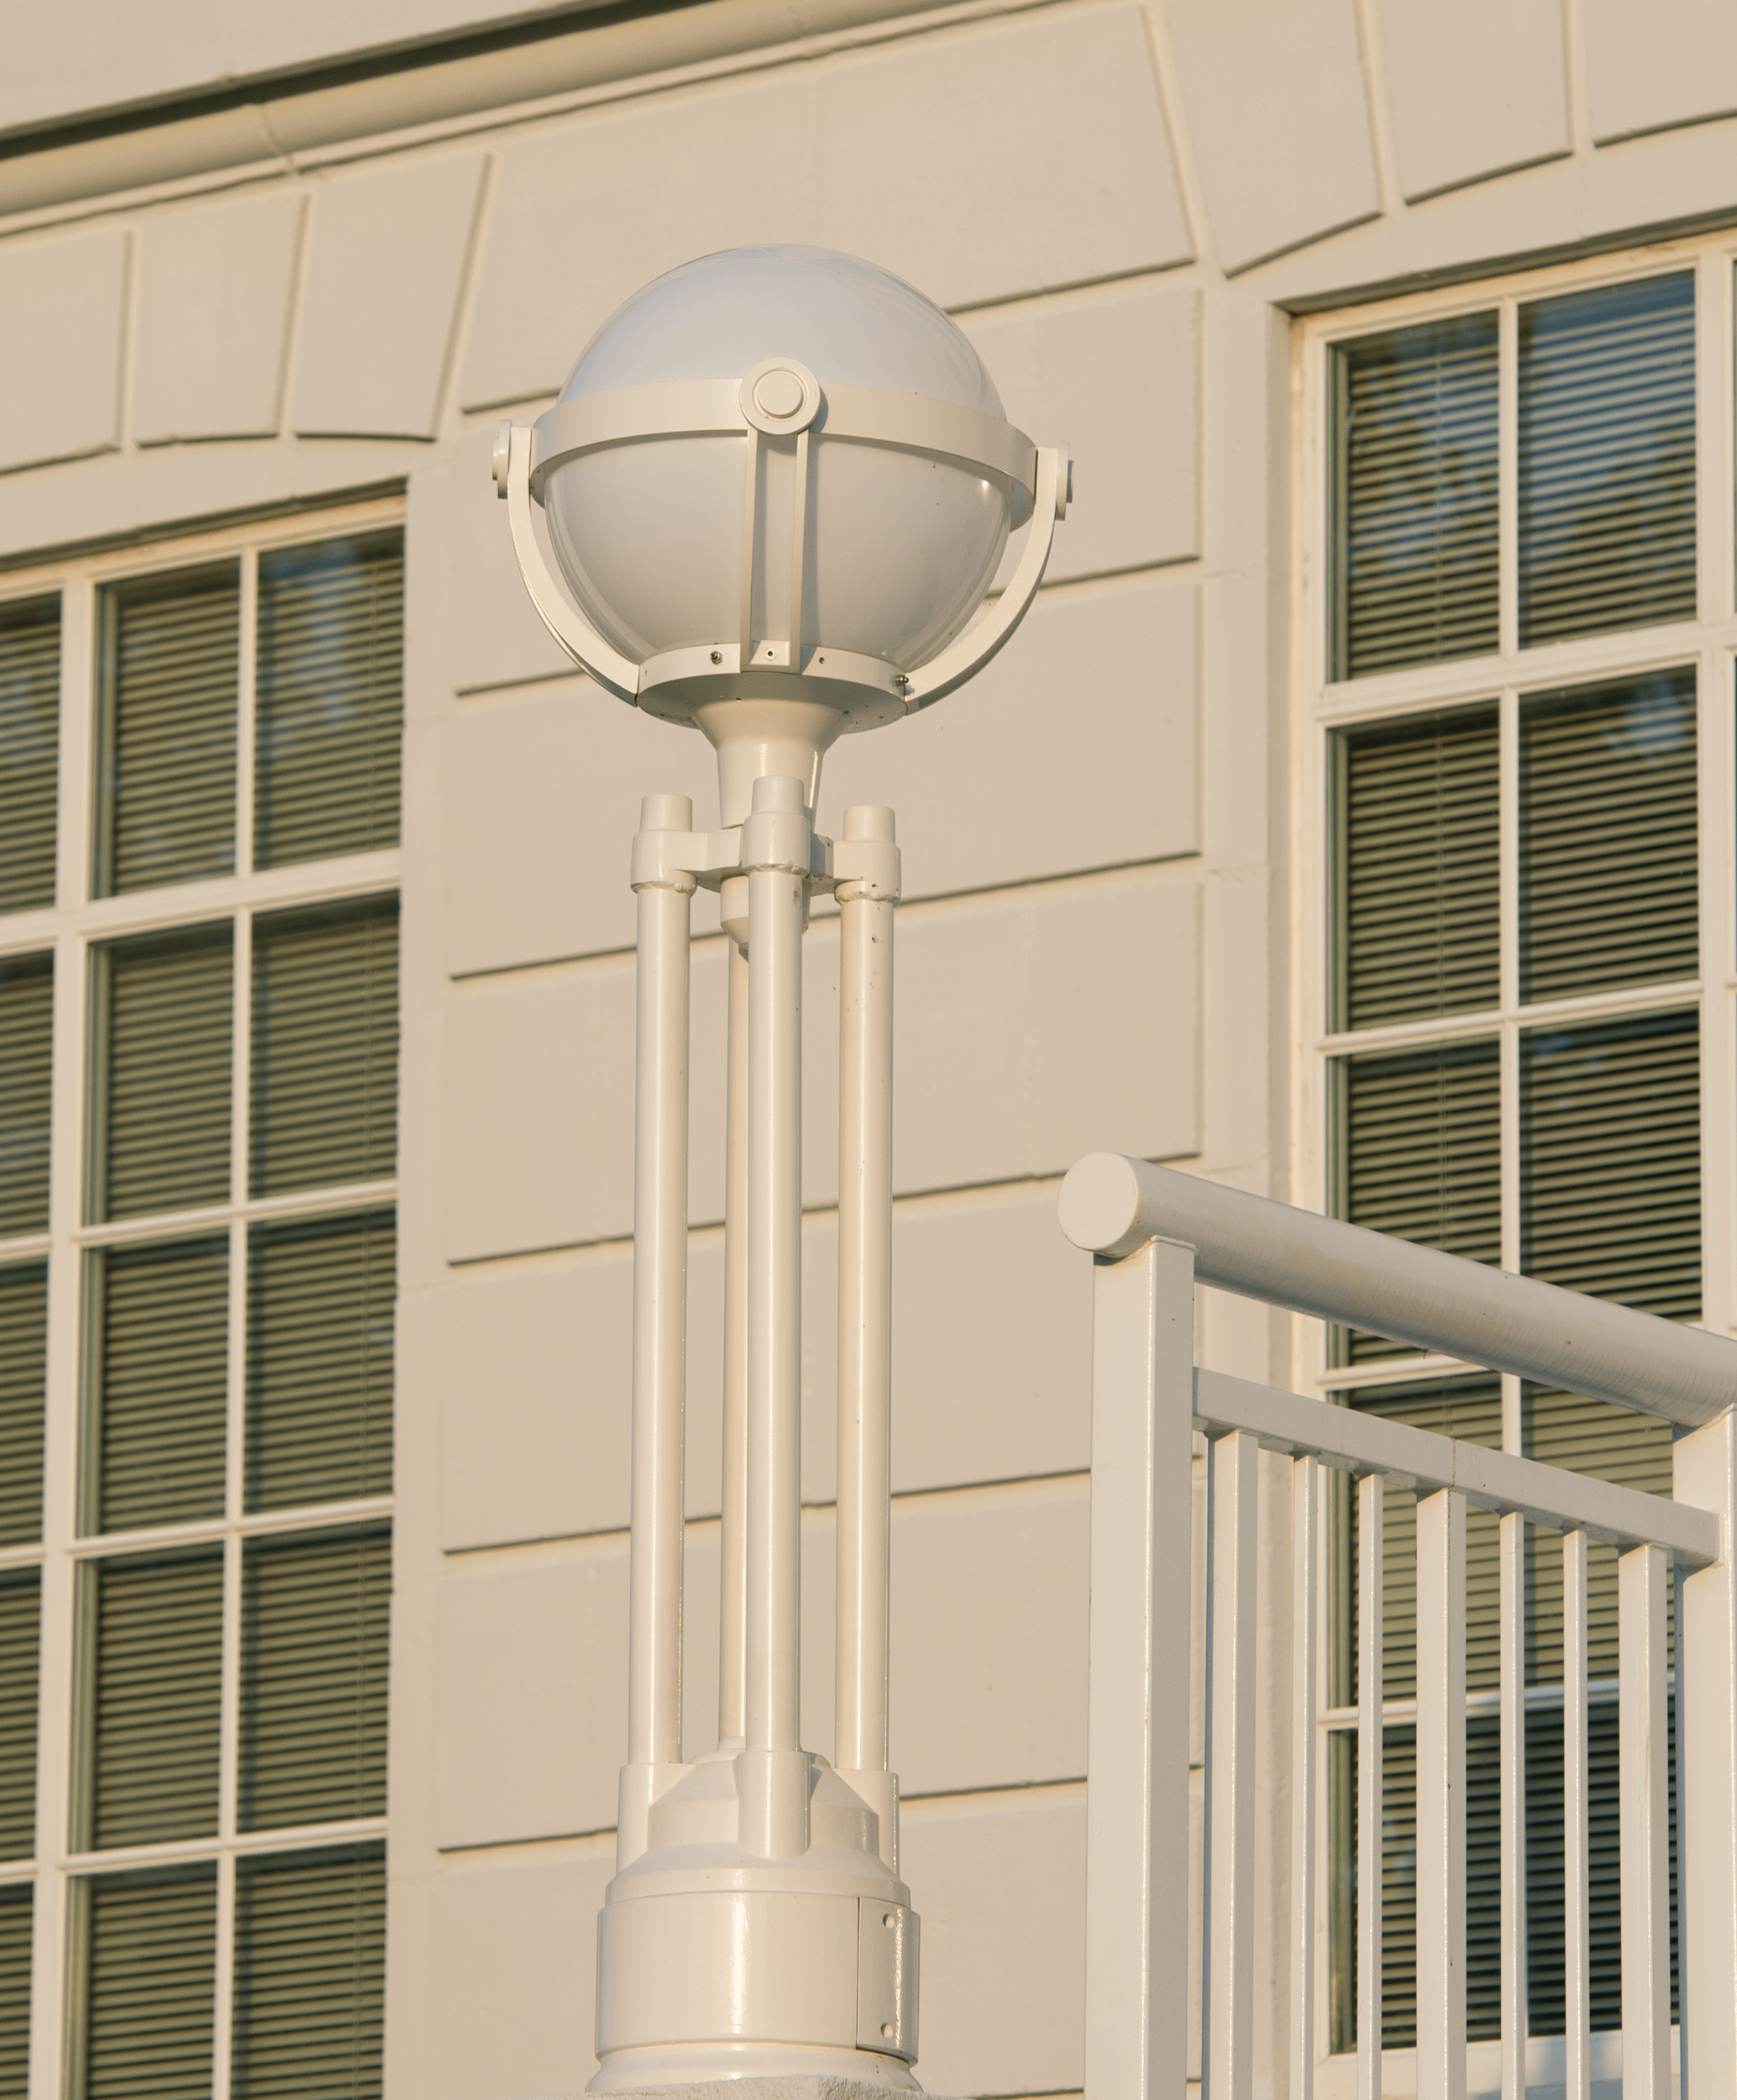 Lamp at entrance